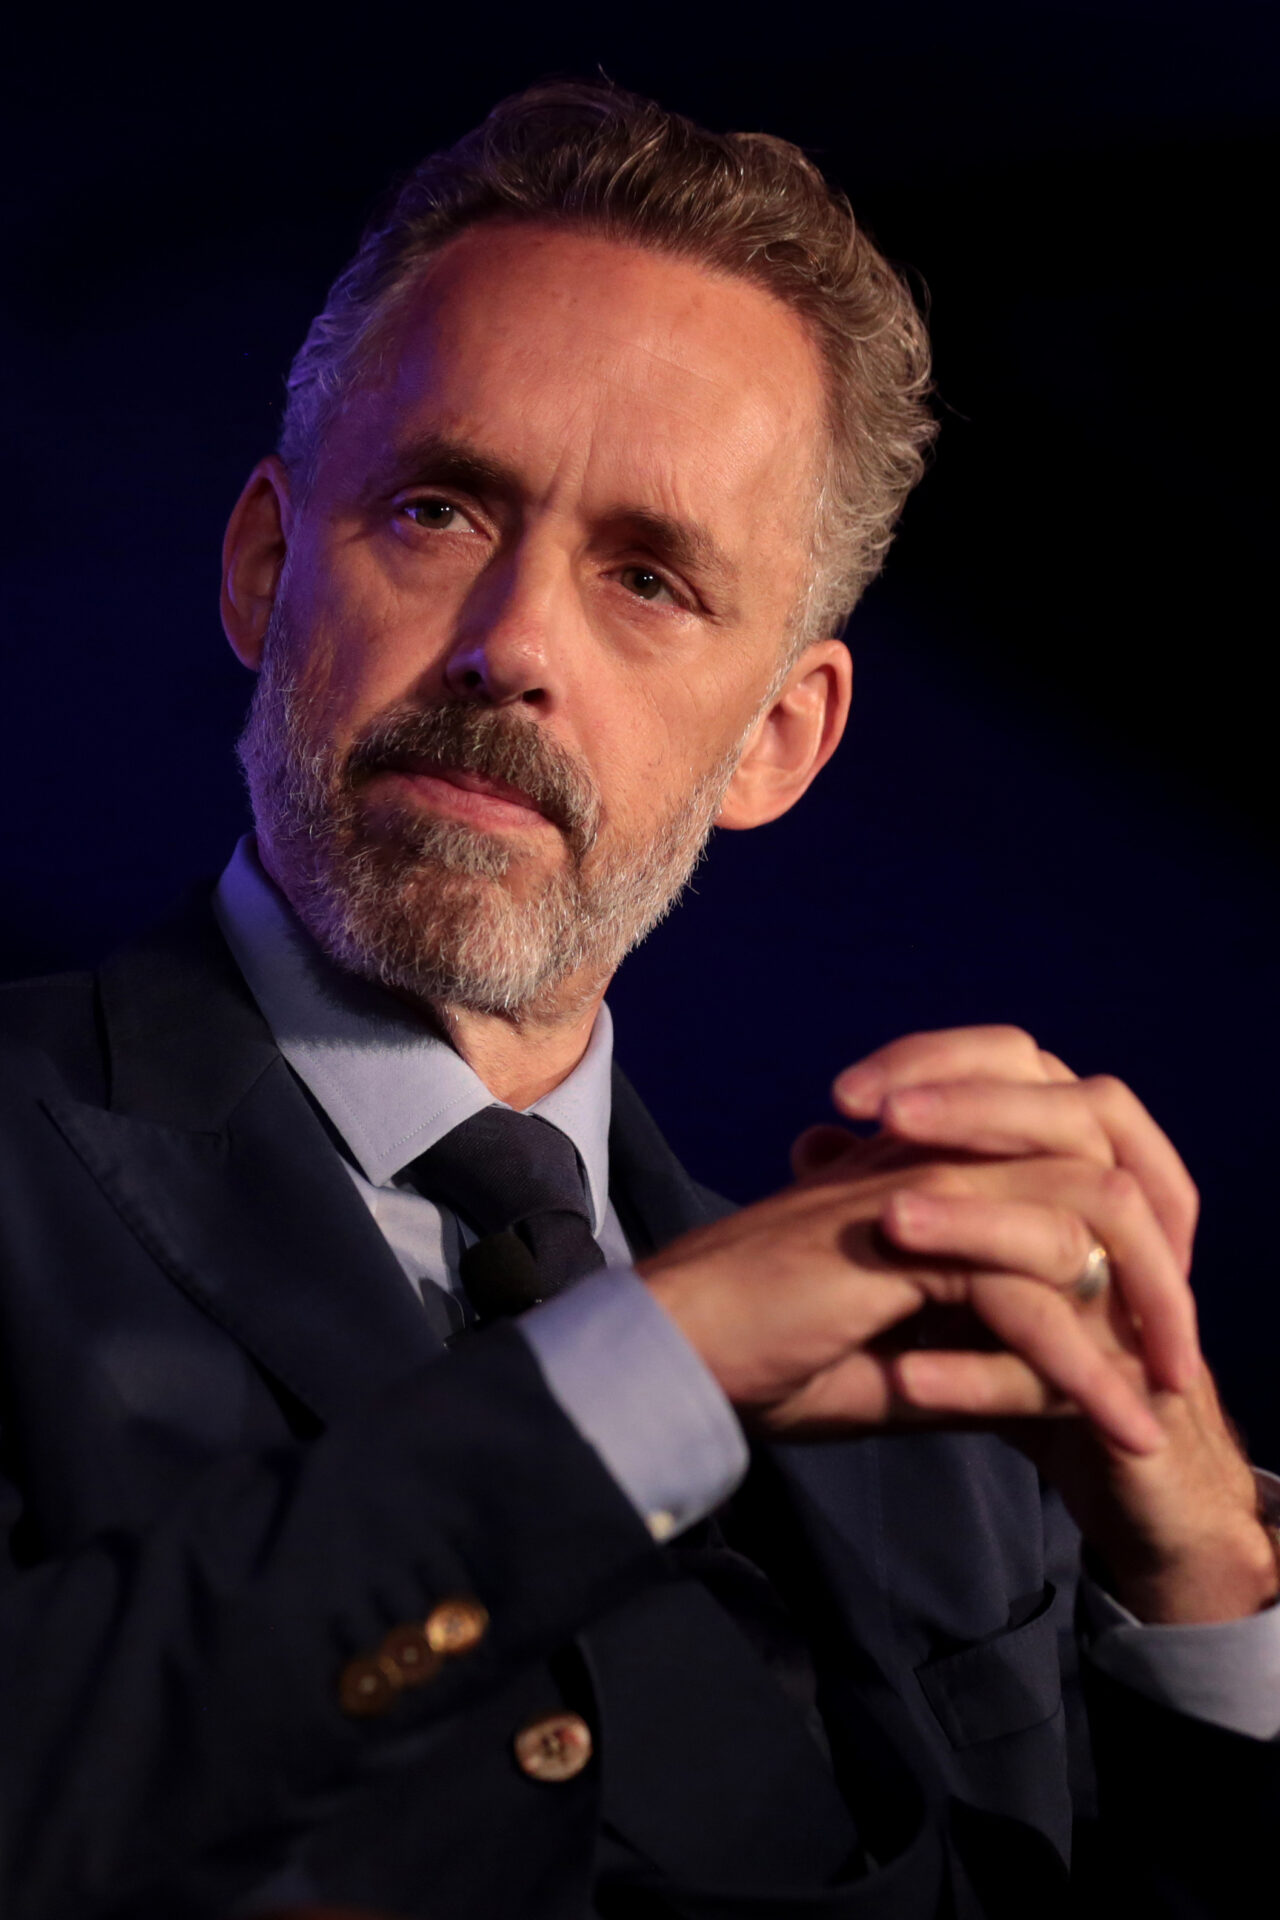 Jordan Peterson is pictured here locking his hands as he looks out to the left of the camera on a dark stage. His face is partly shadowed. Peterson is wearing a black suit and tie.